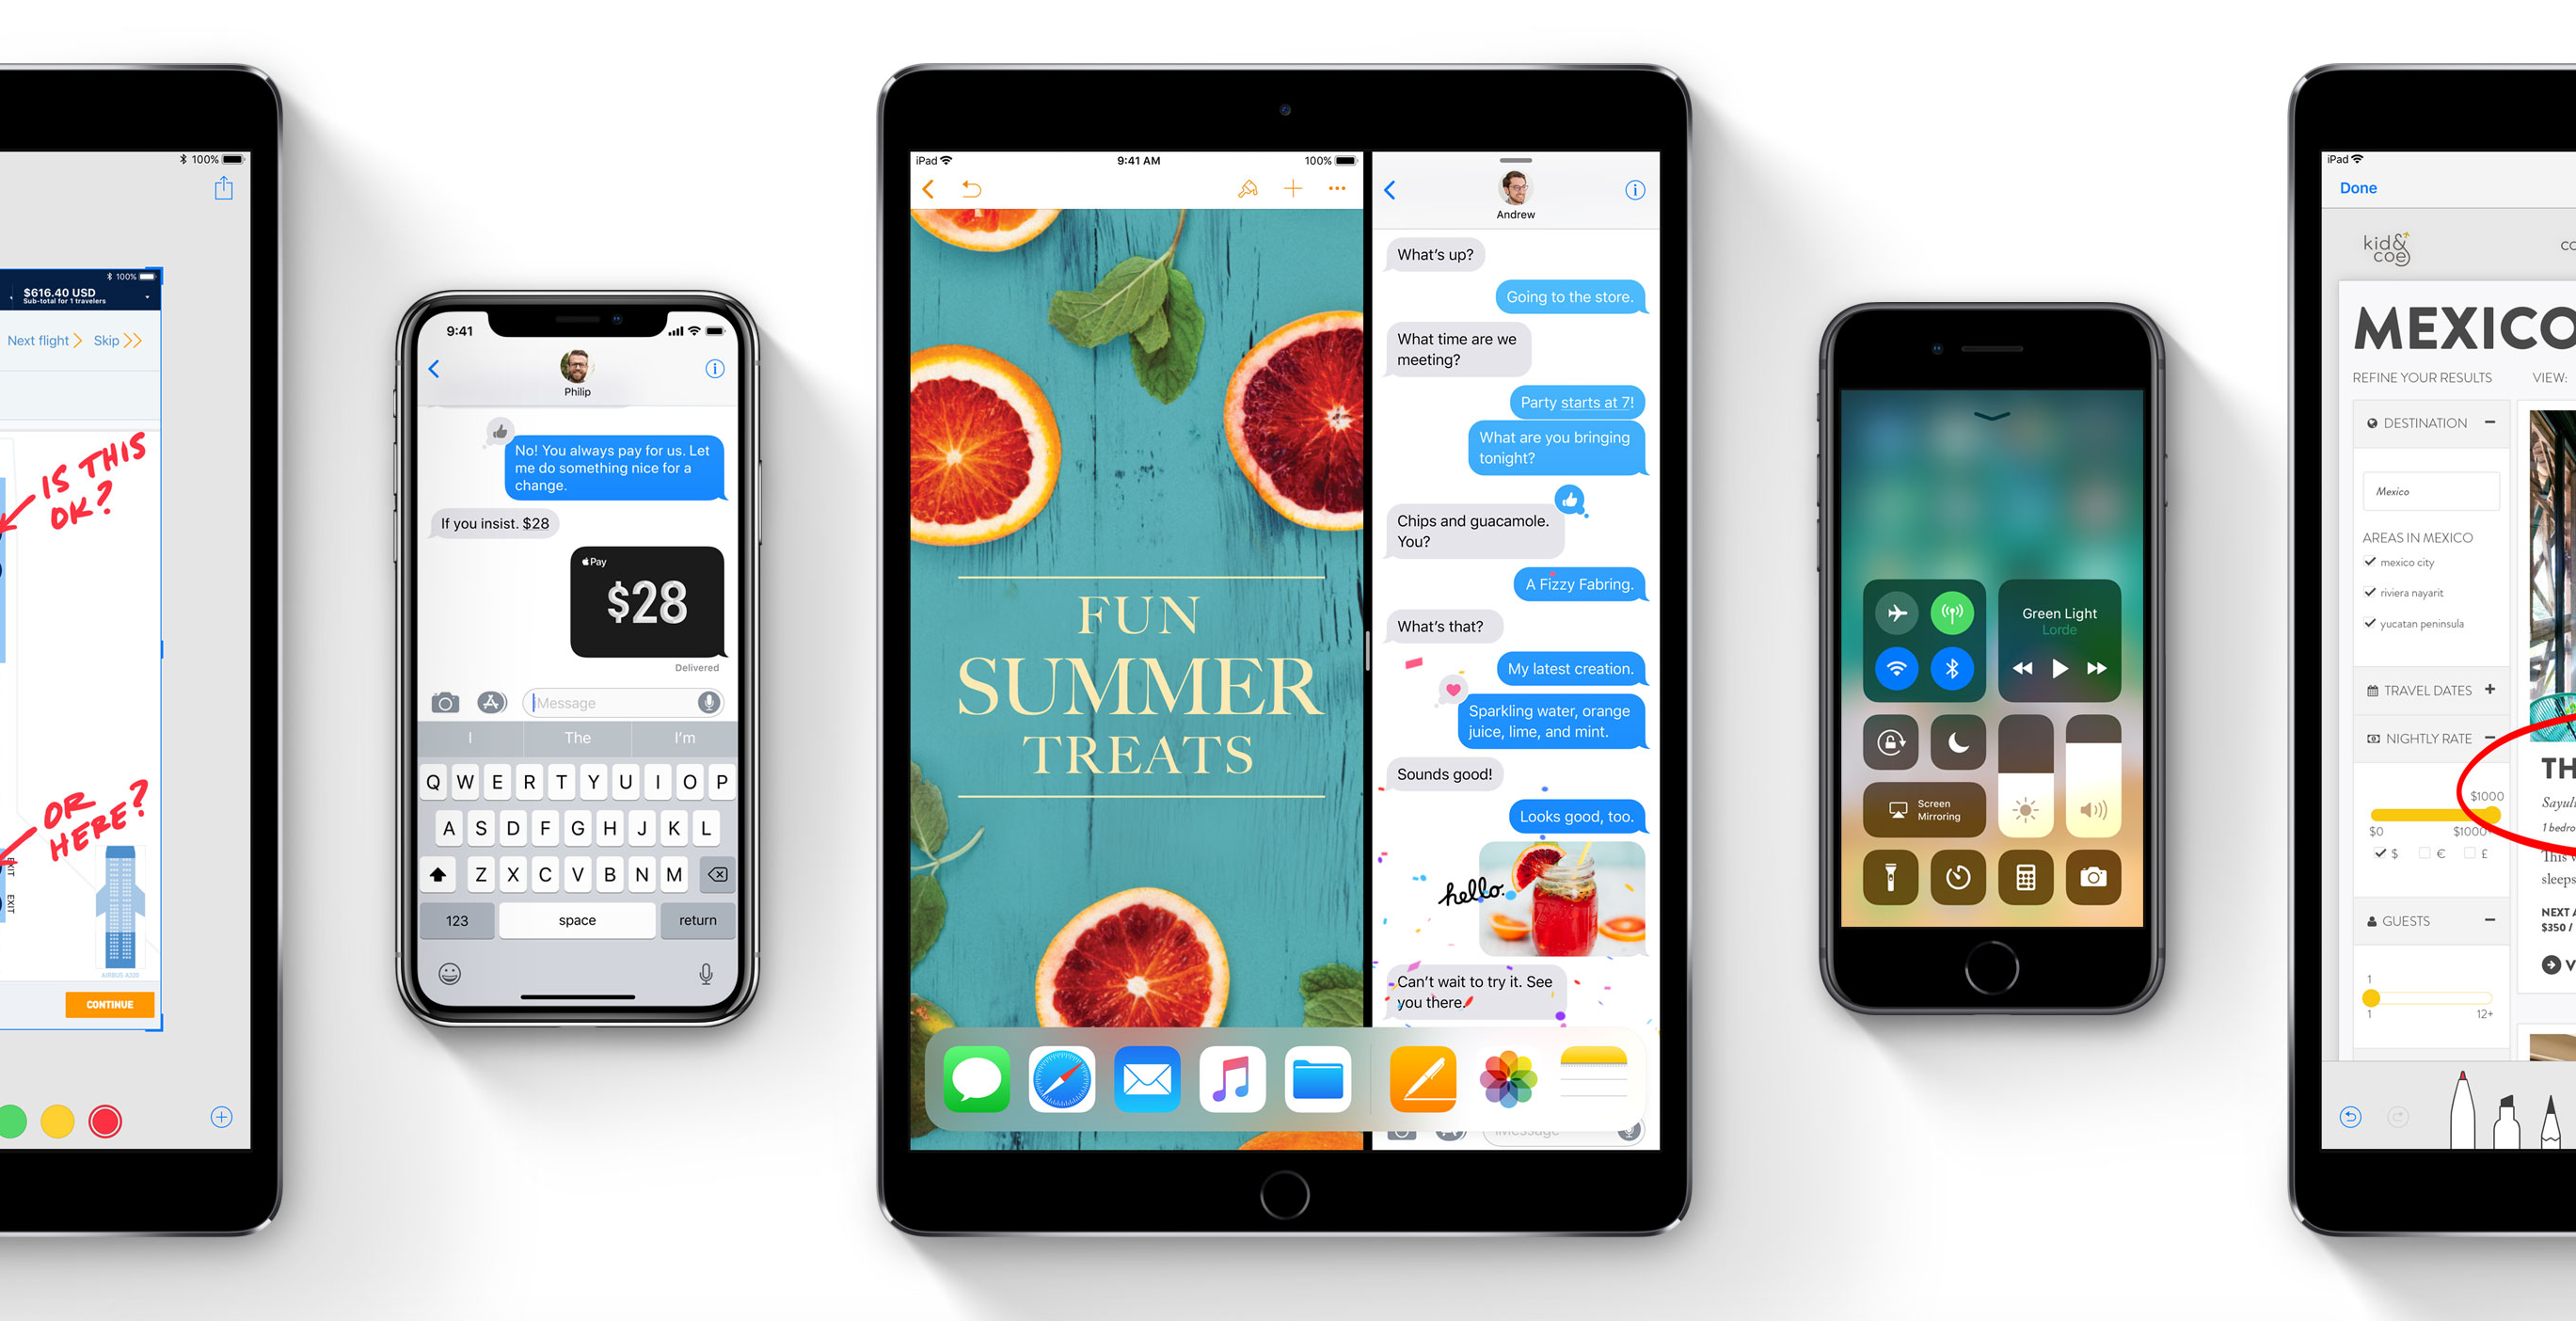 IOS 11 Arrives in 2 Days - Here is What You Get